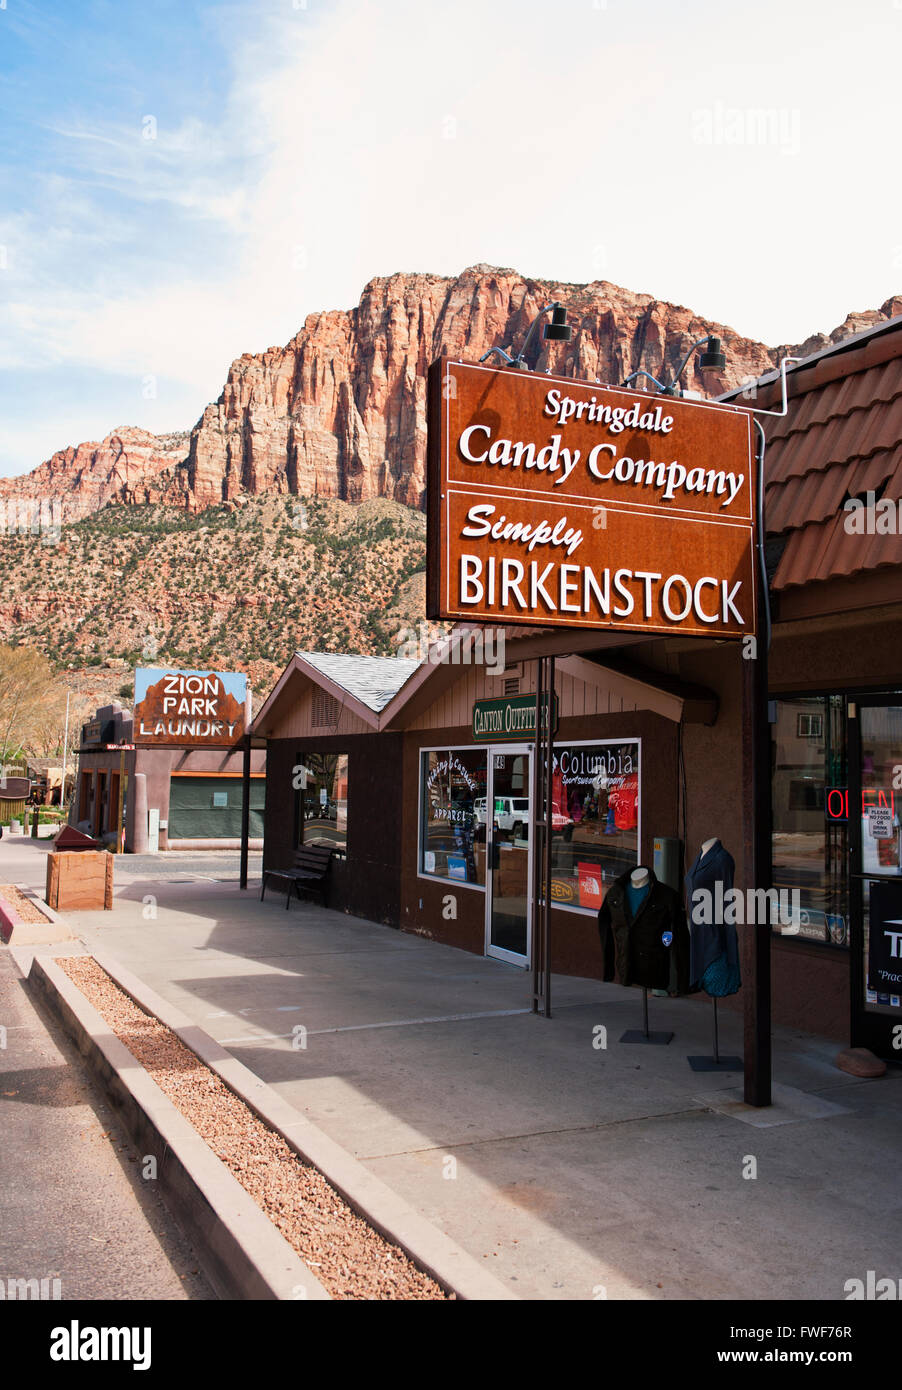 Springdale the gateway town to Zion National Park - Stock Image